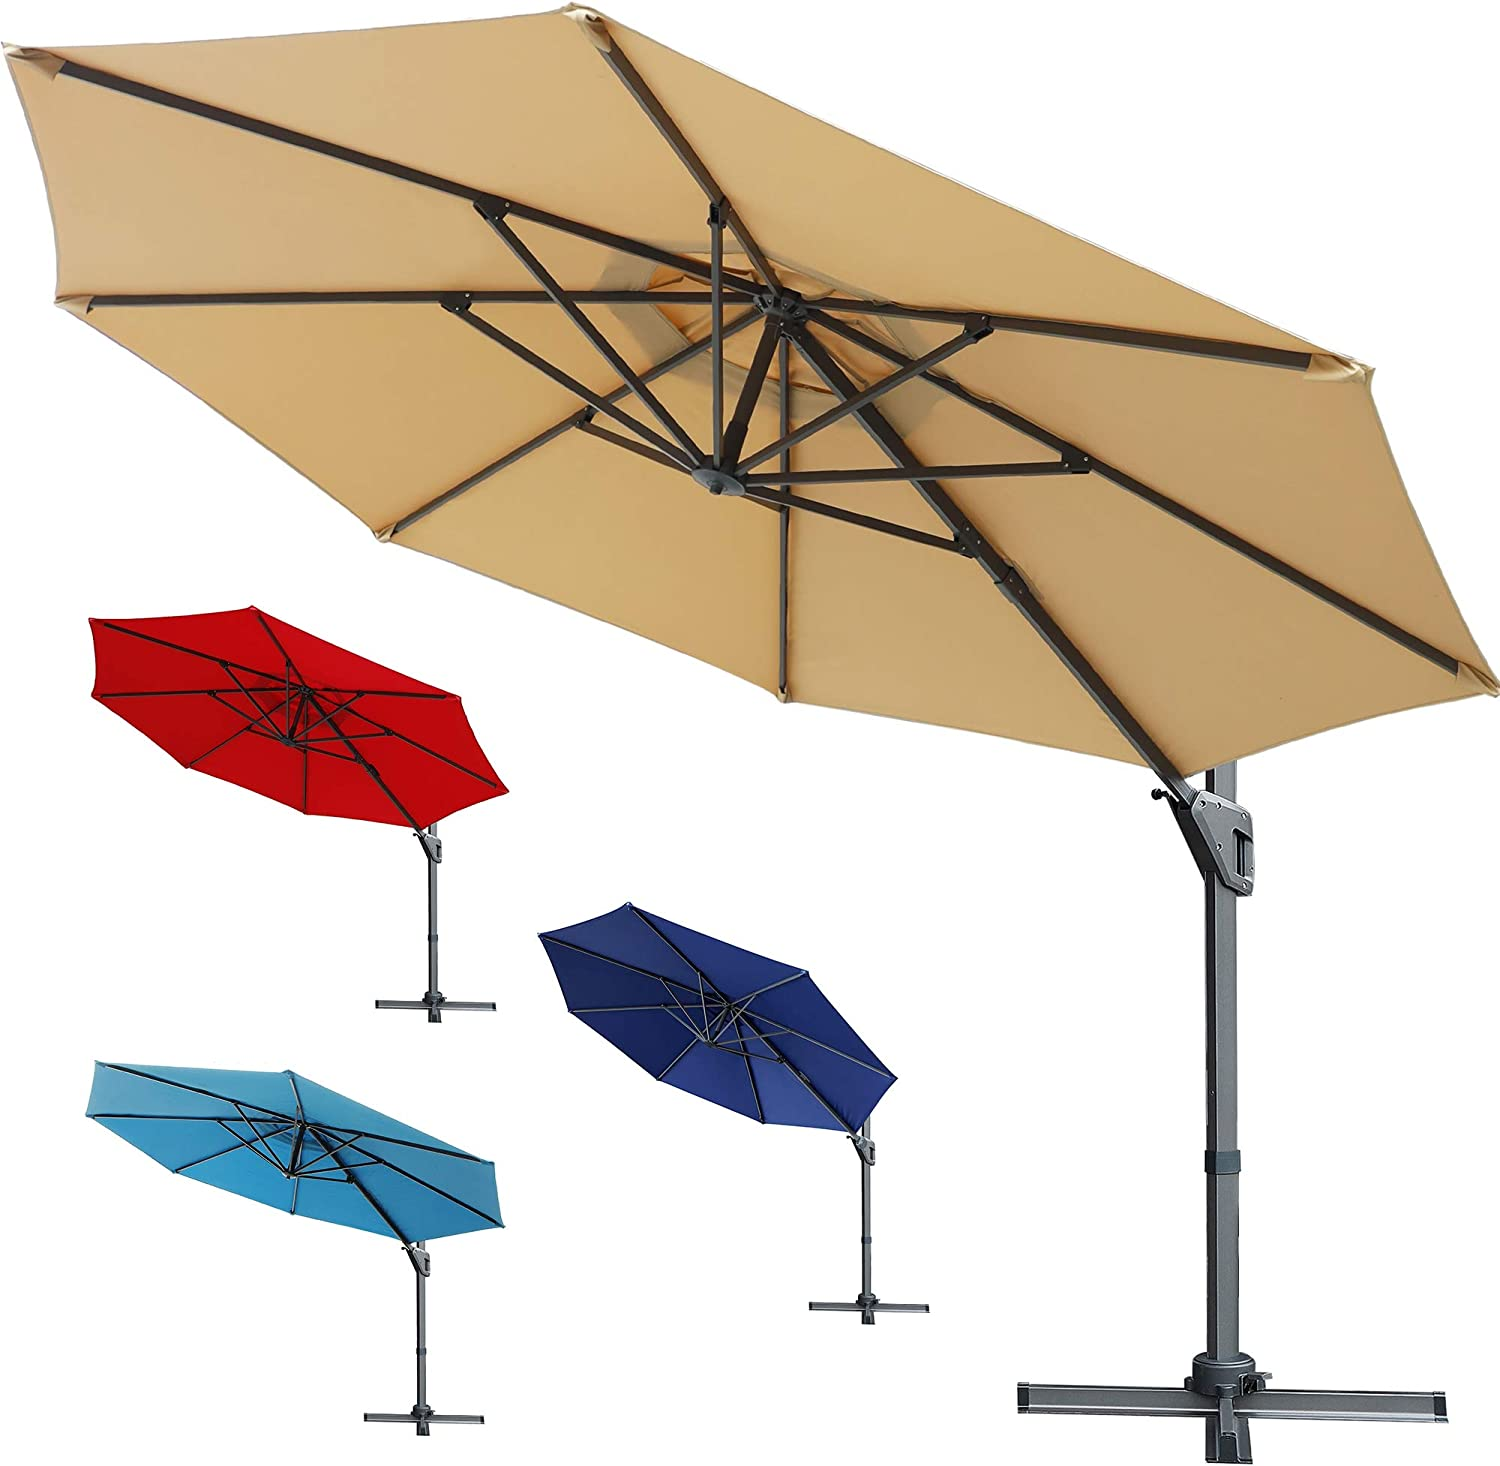 10 Best Patio Umbrella for Windy Conditions in 2021 1